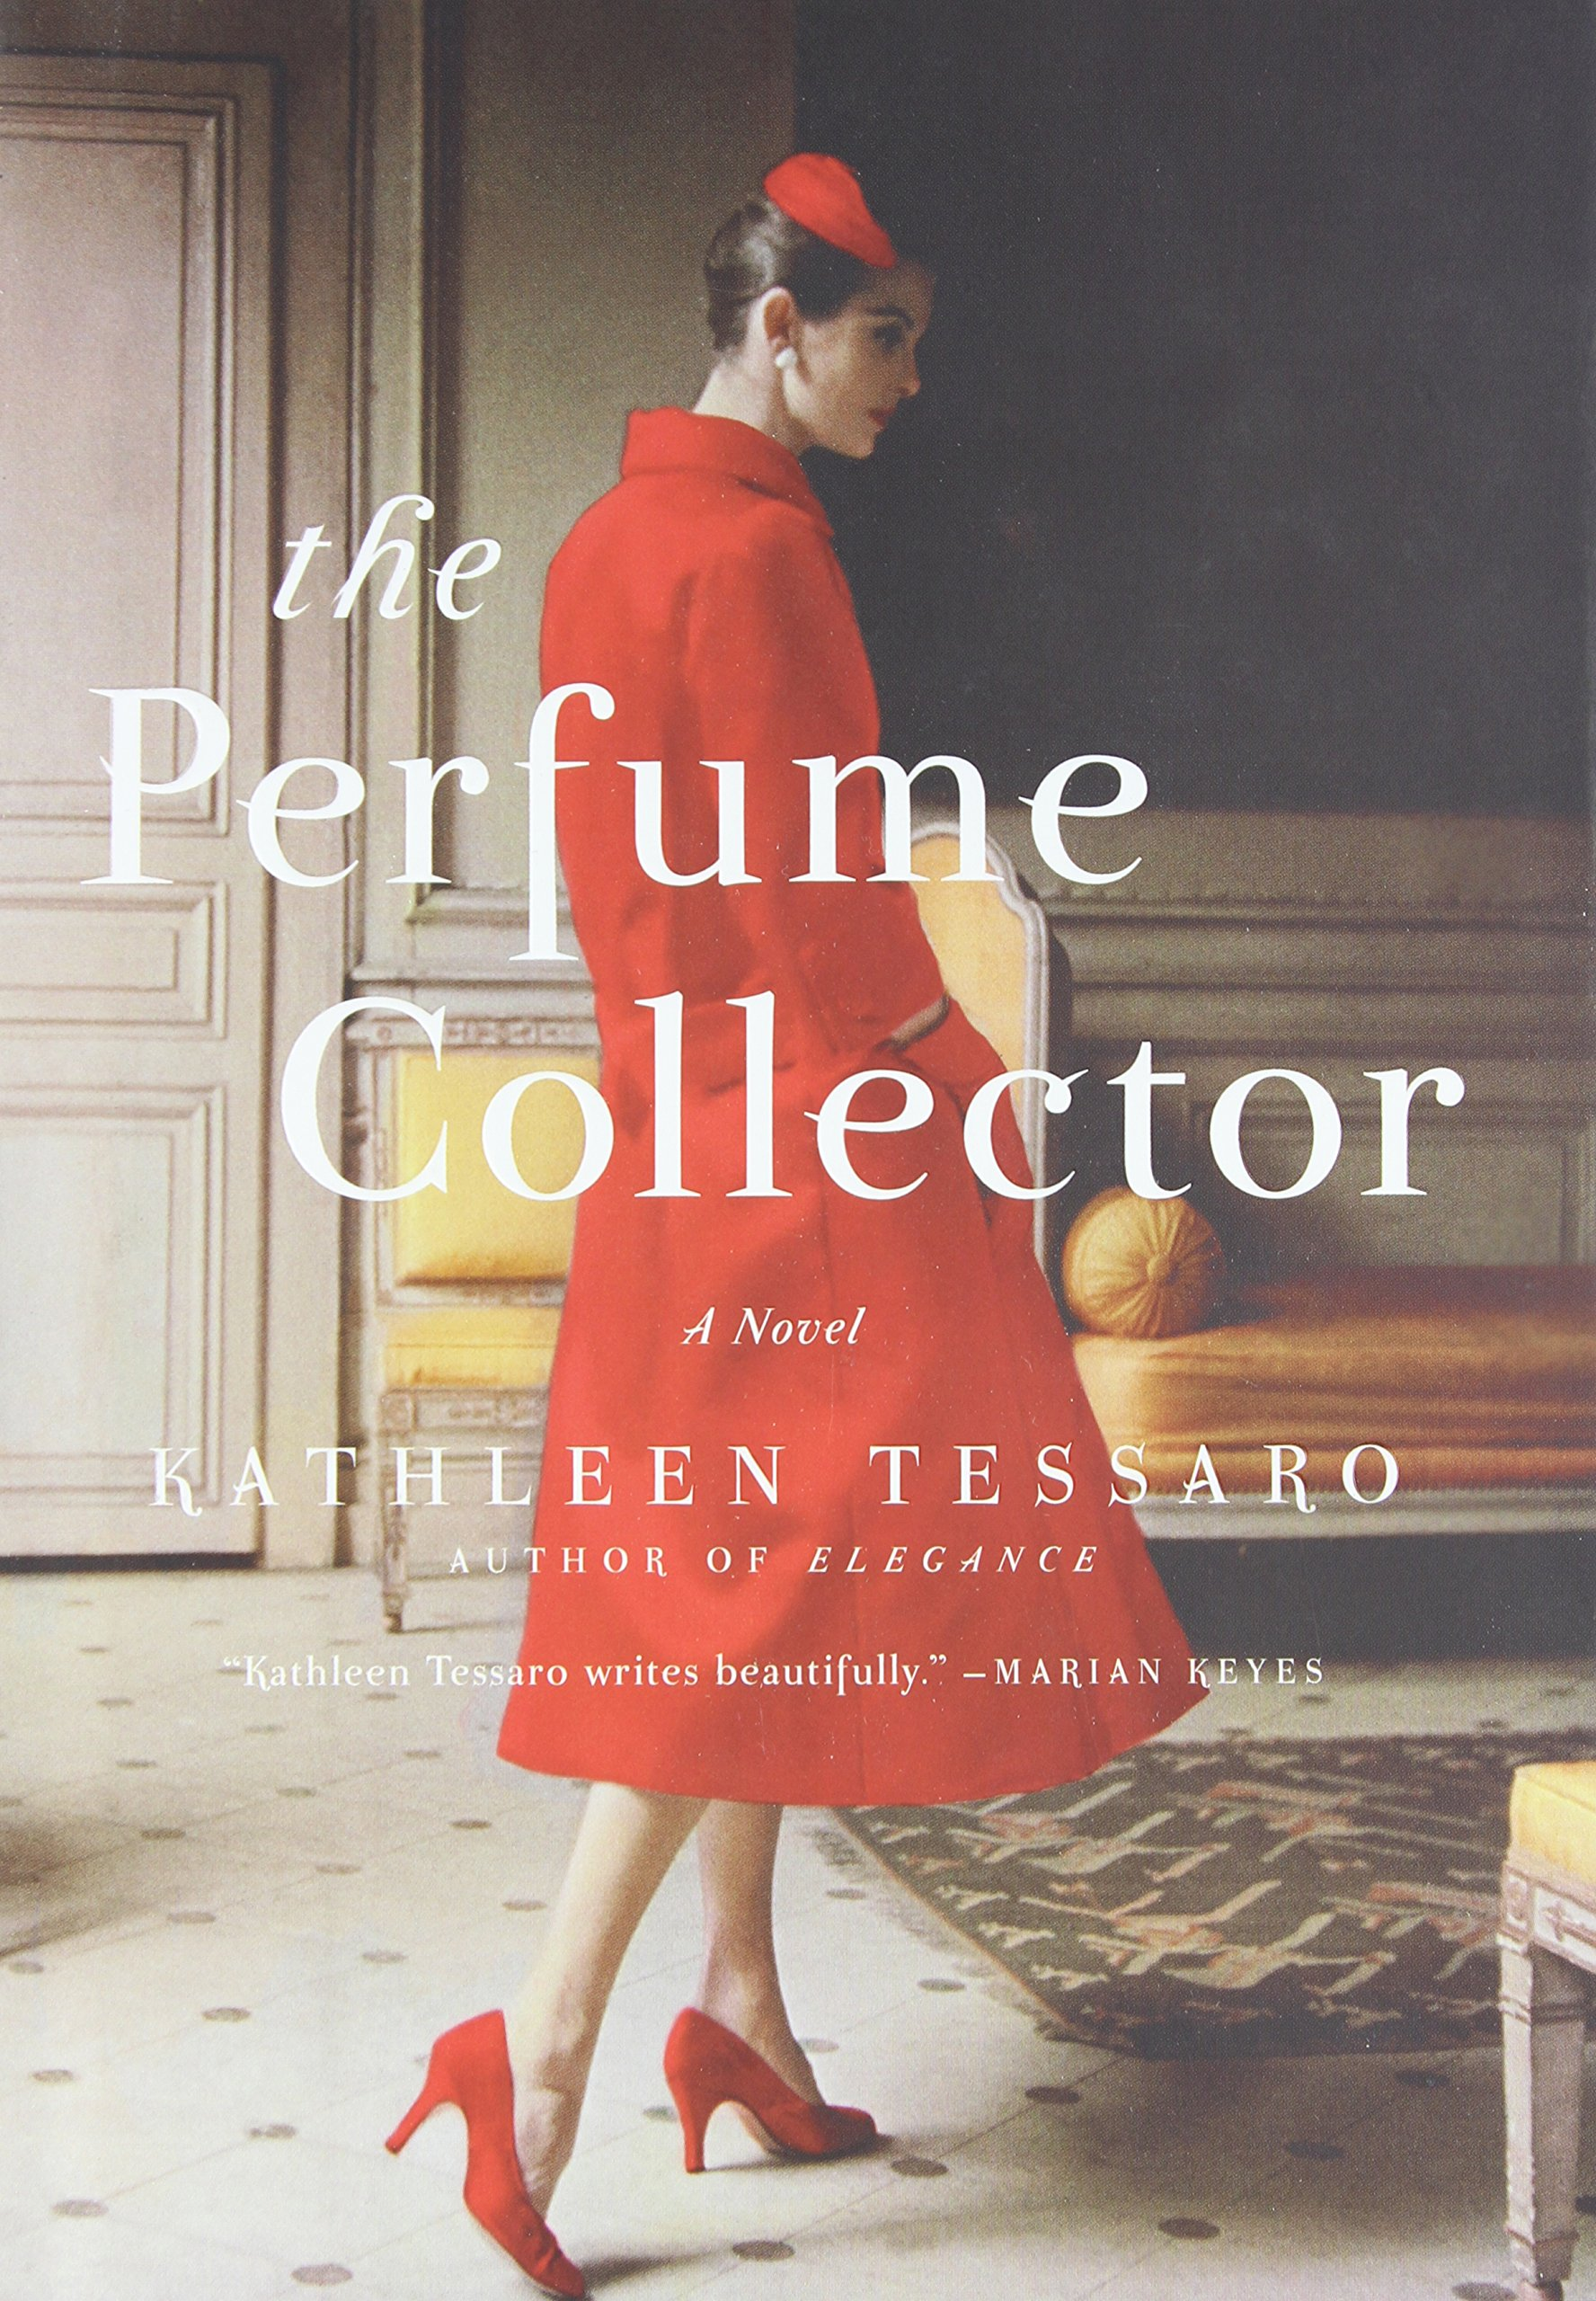 The Perfume Collector by Kathleen Tessaro advise